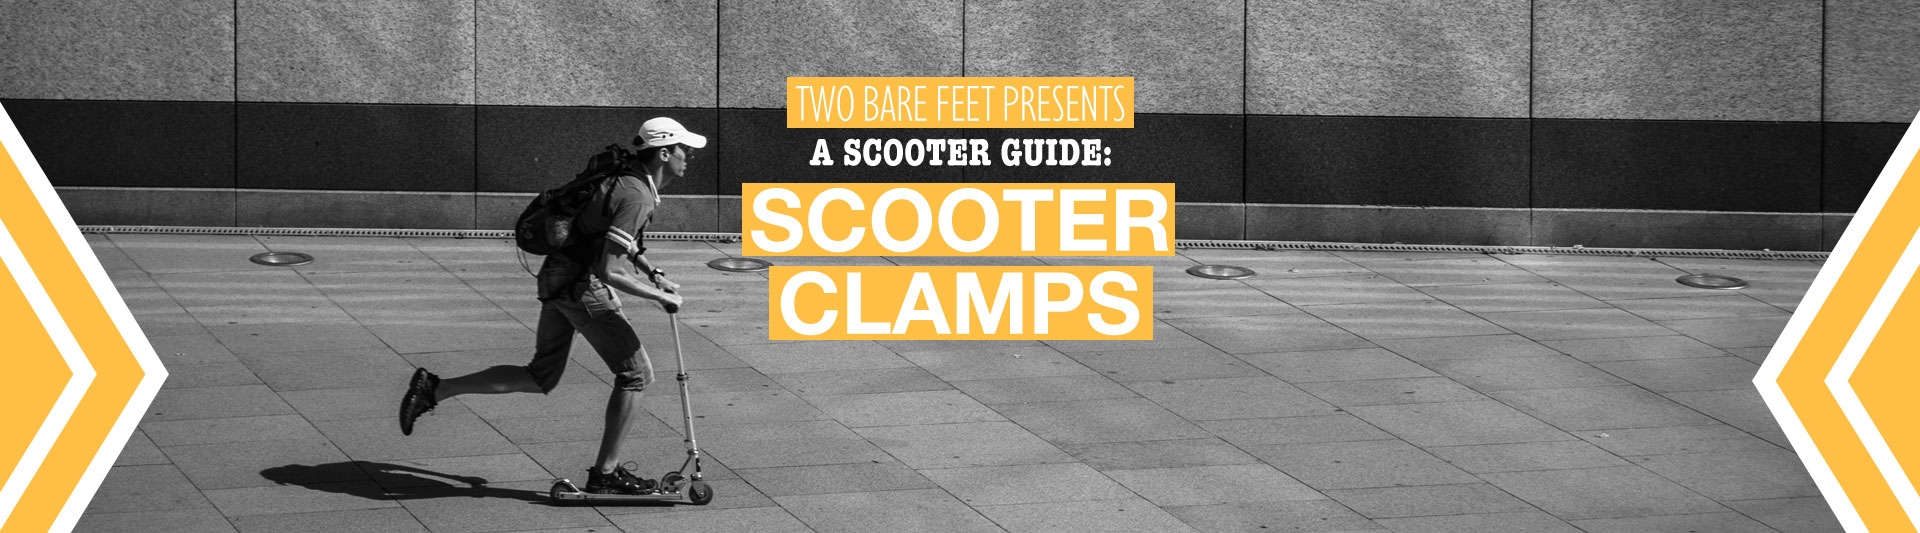 Scooter clamp banner